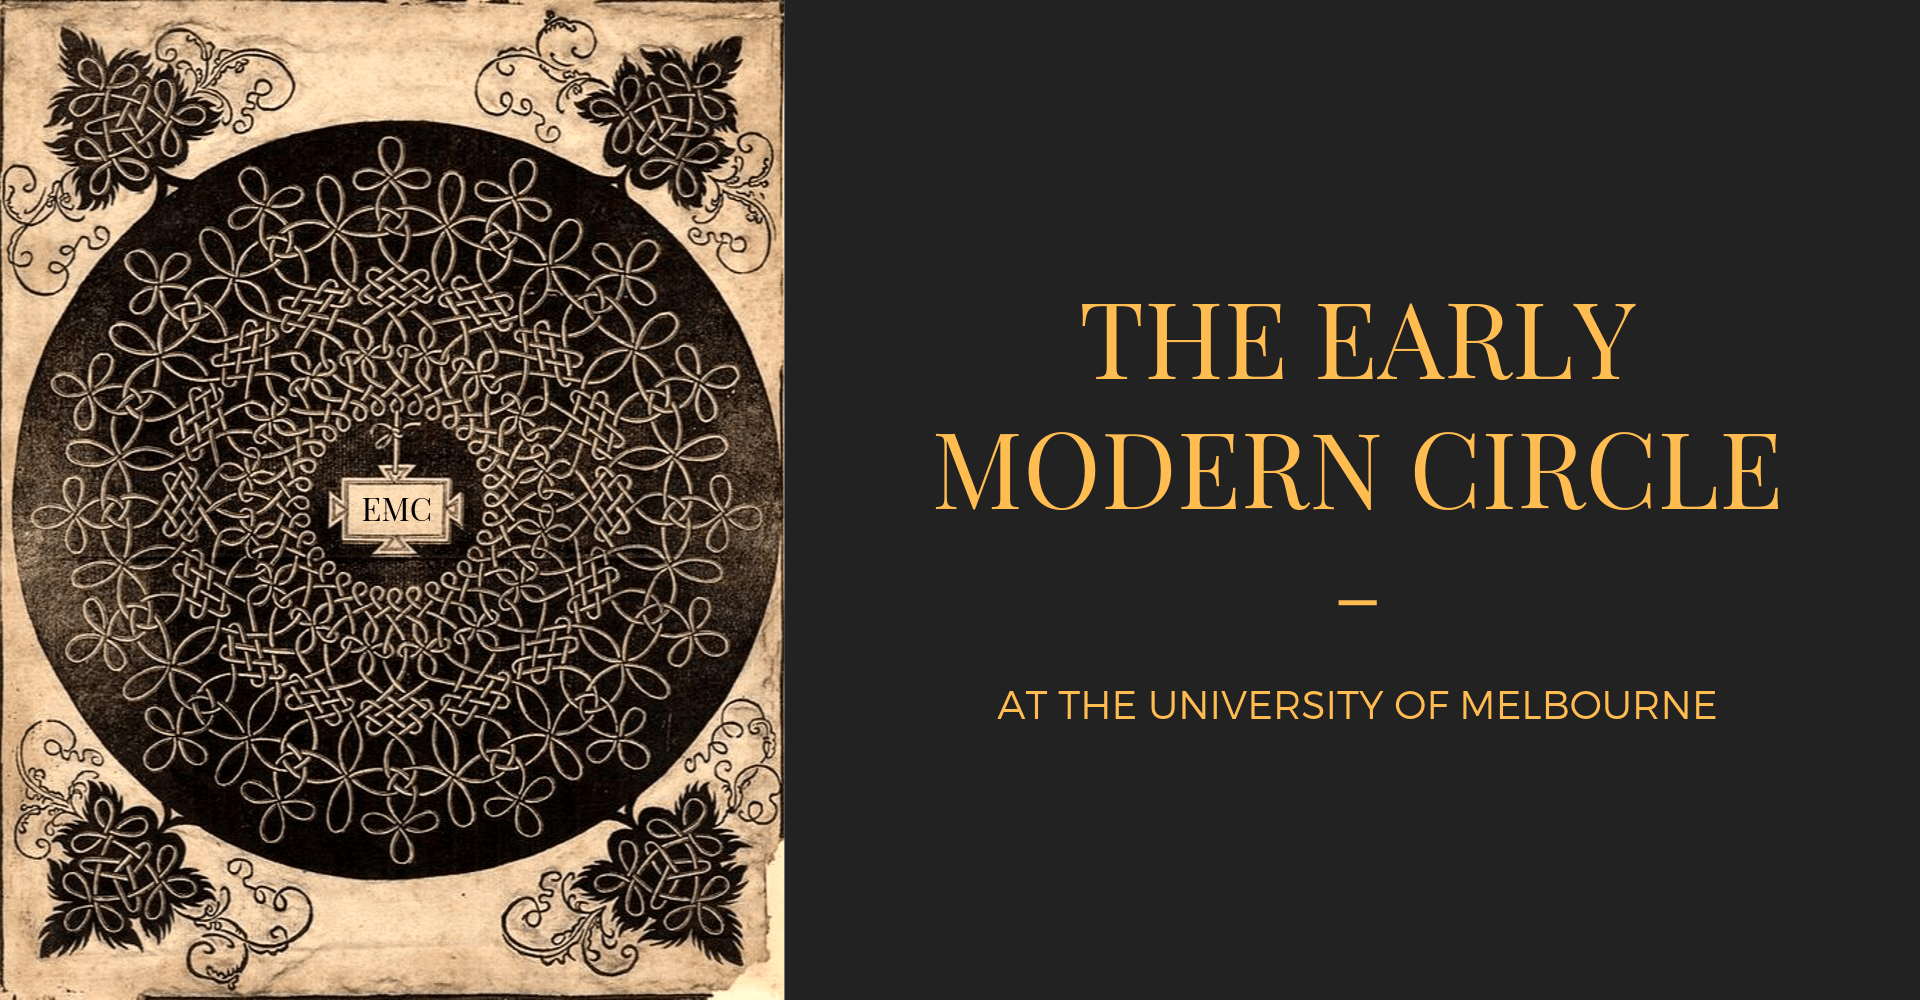 the early modern circle at the university of melbourne is written in yellow on black background